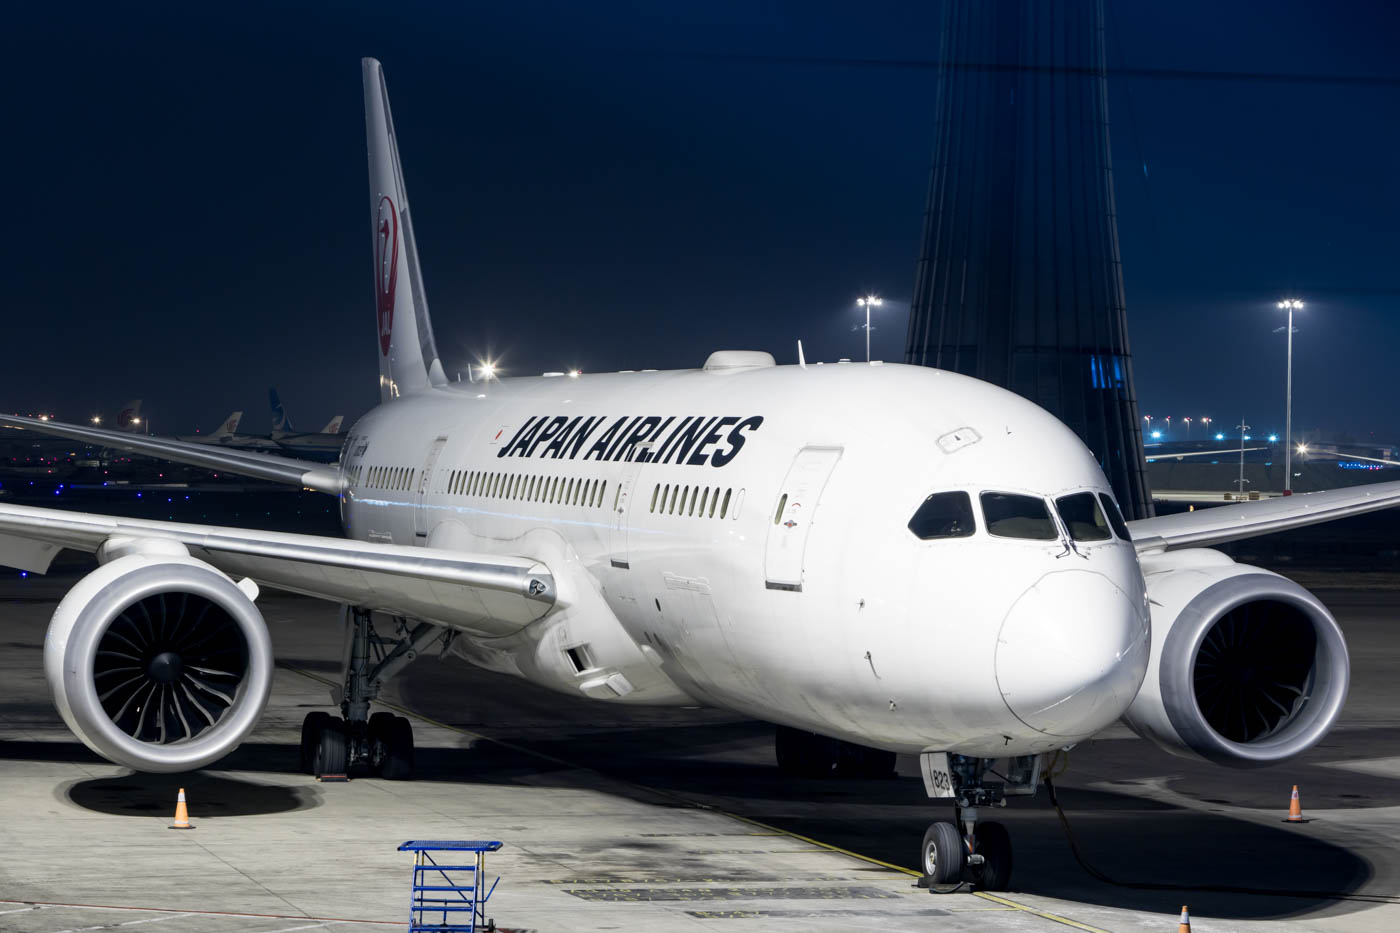 Japan Airlines 787-8 at Beijing Capital